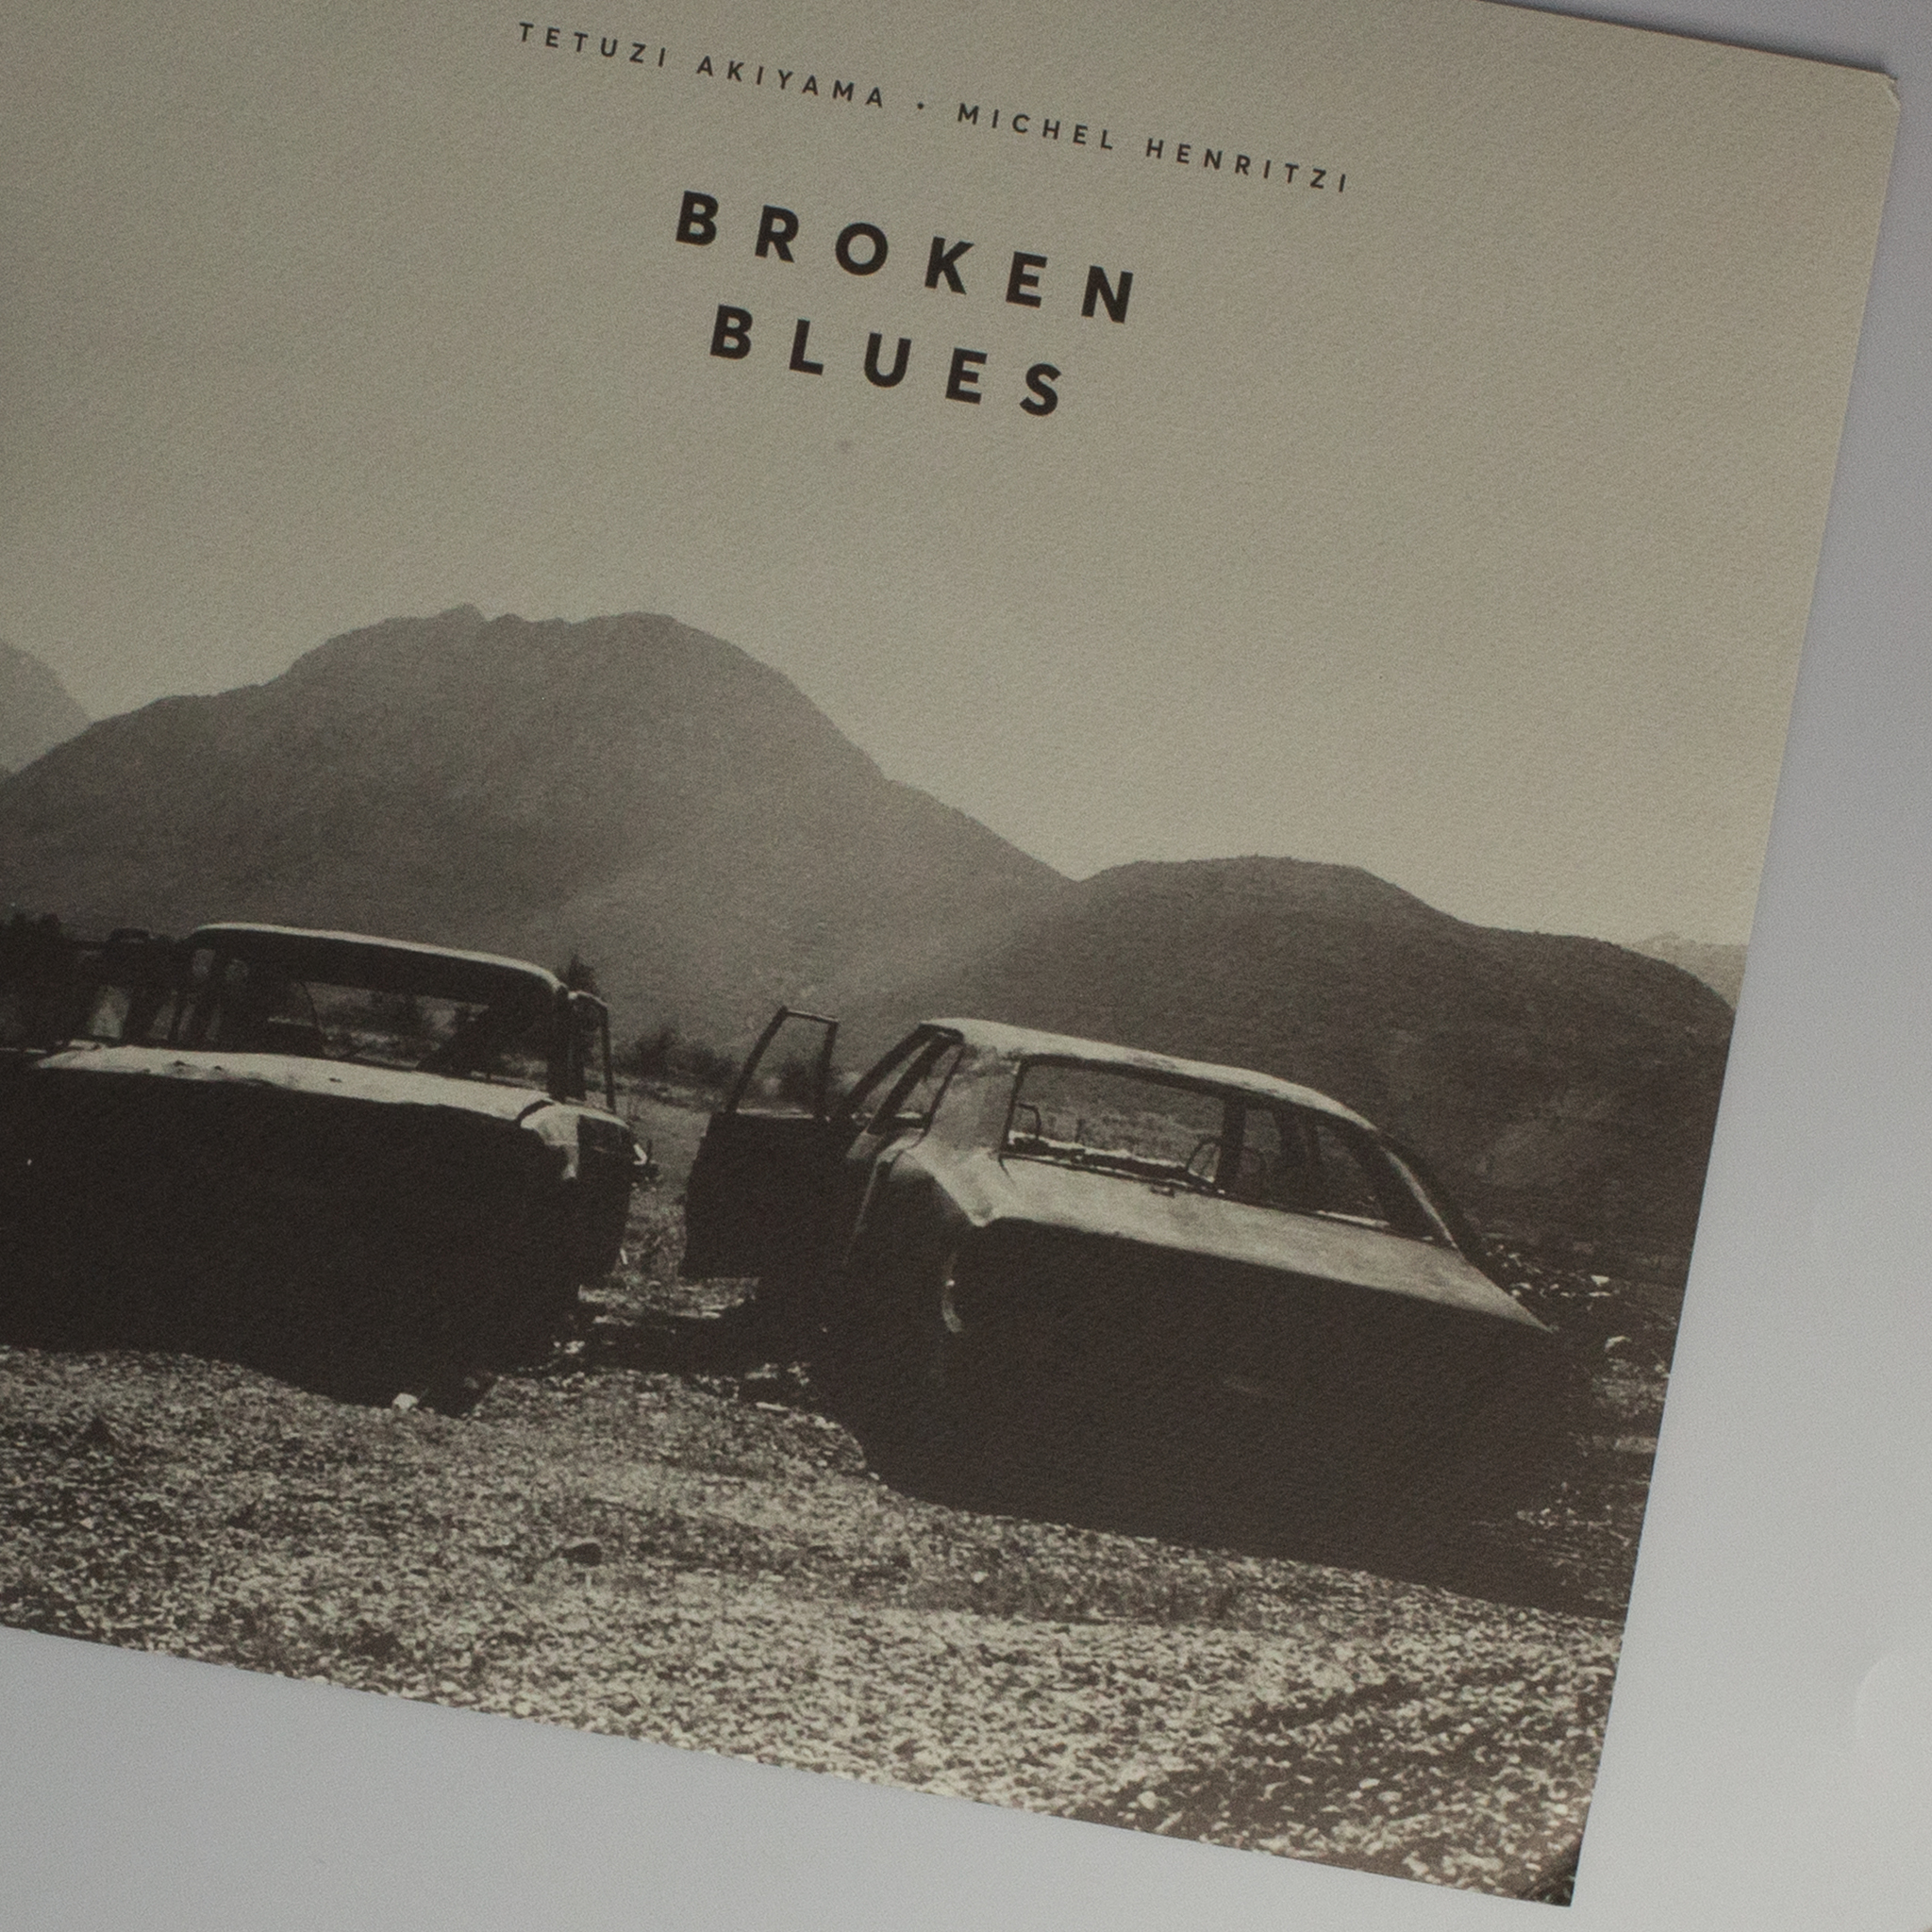 Broken Blues